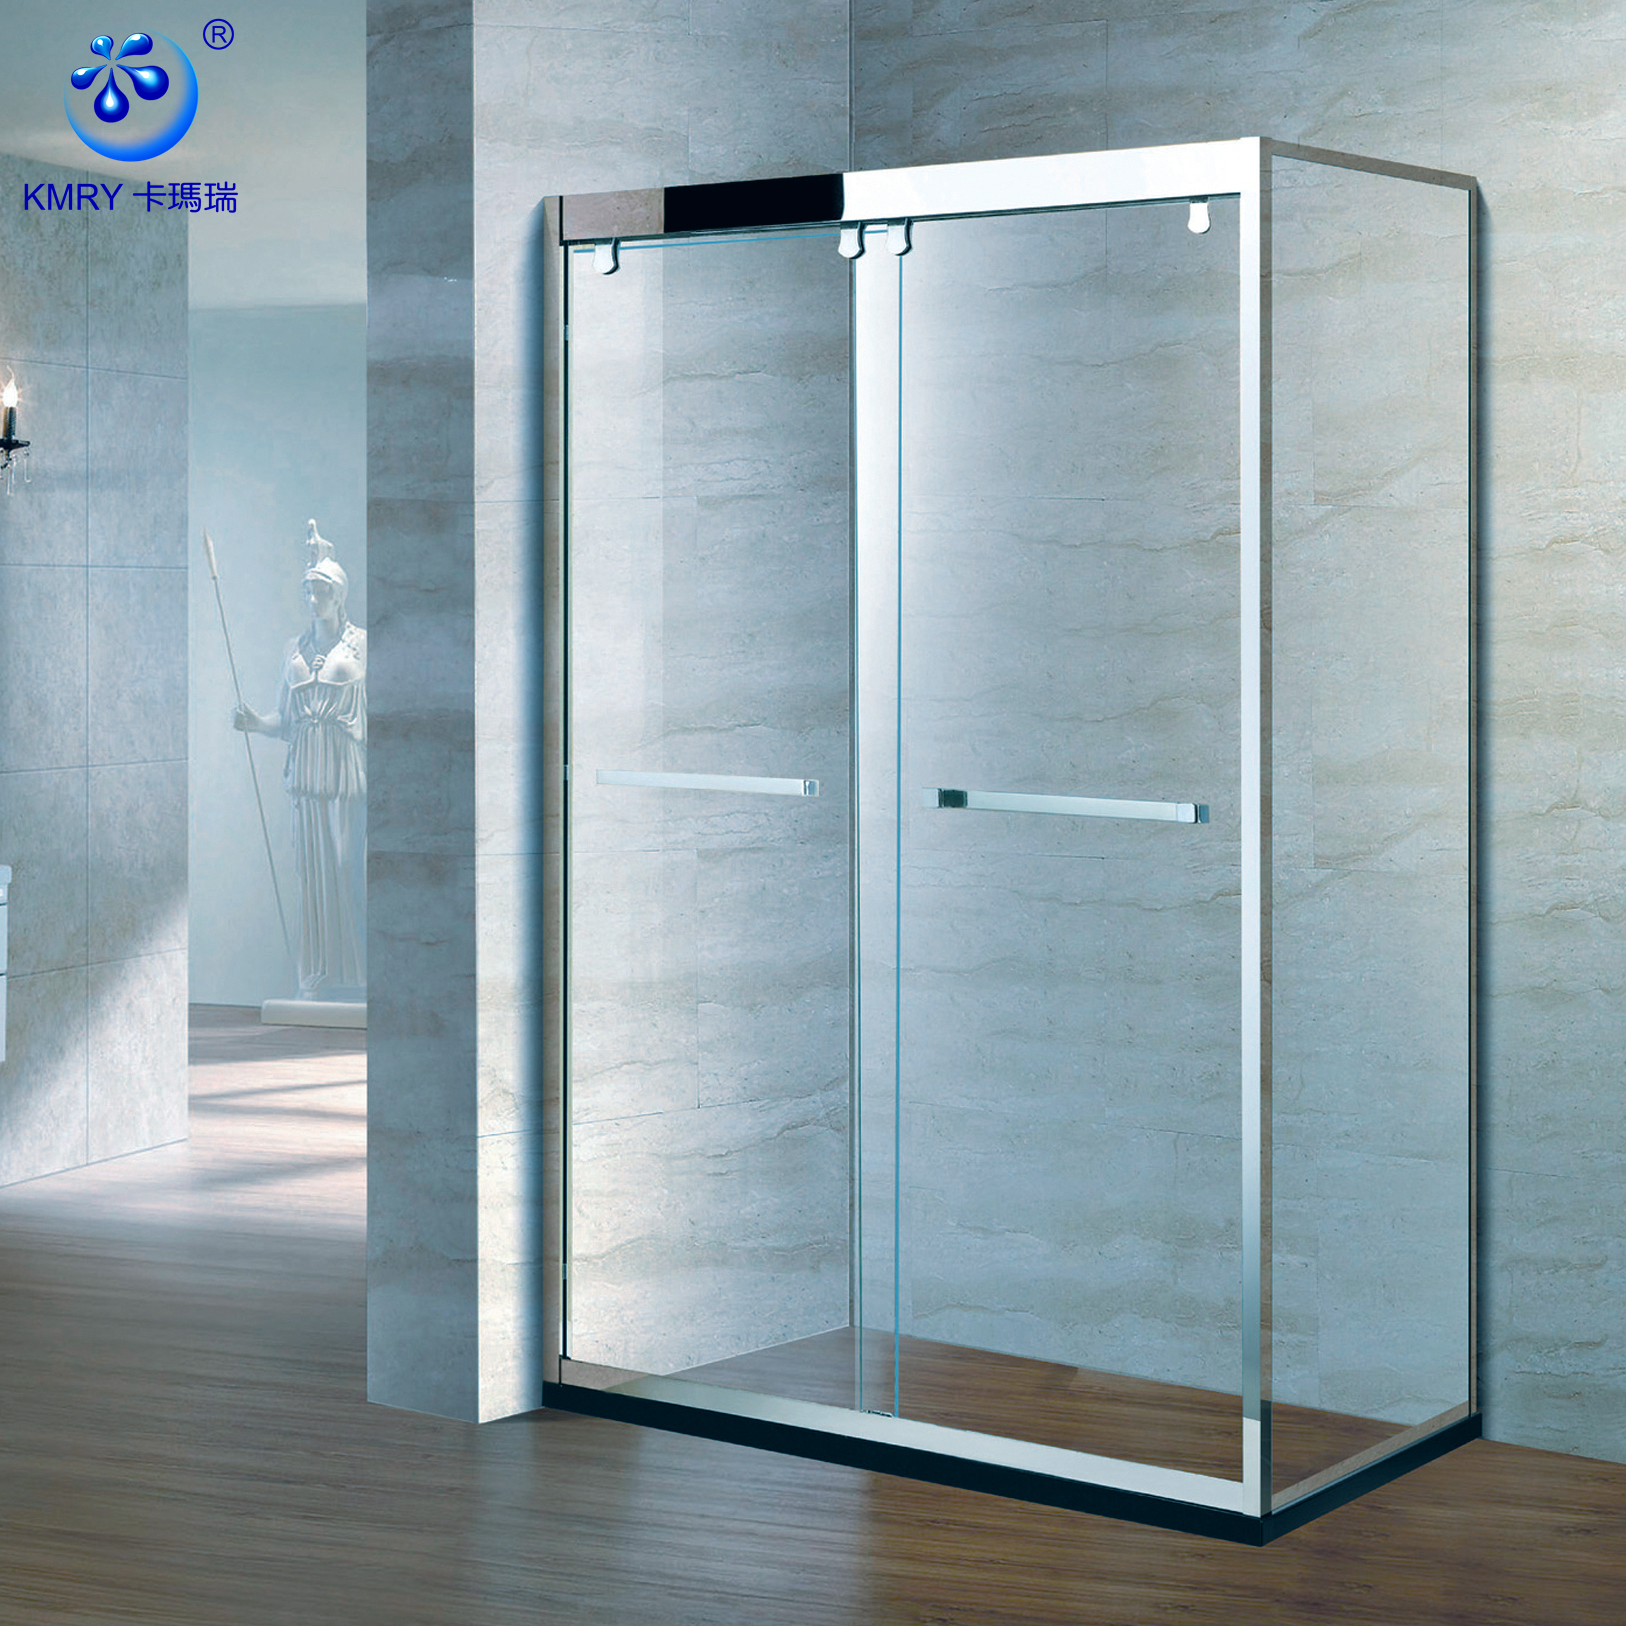 China Shower Cubicle Sizes, China Shower Cubicle Sizes Manufacturers ...